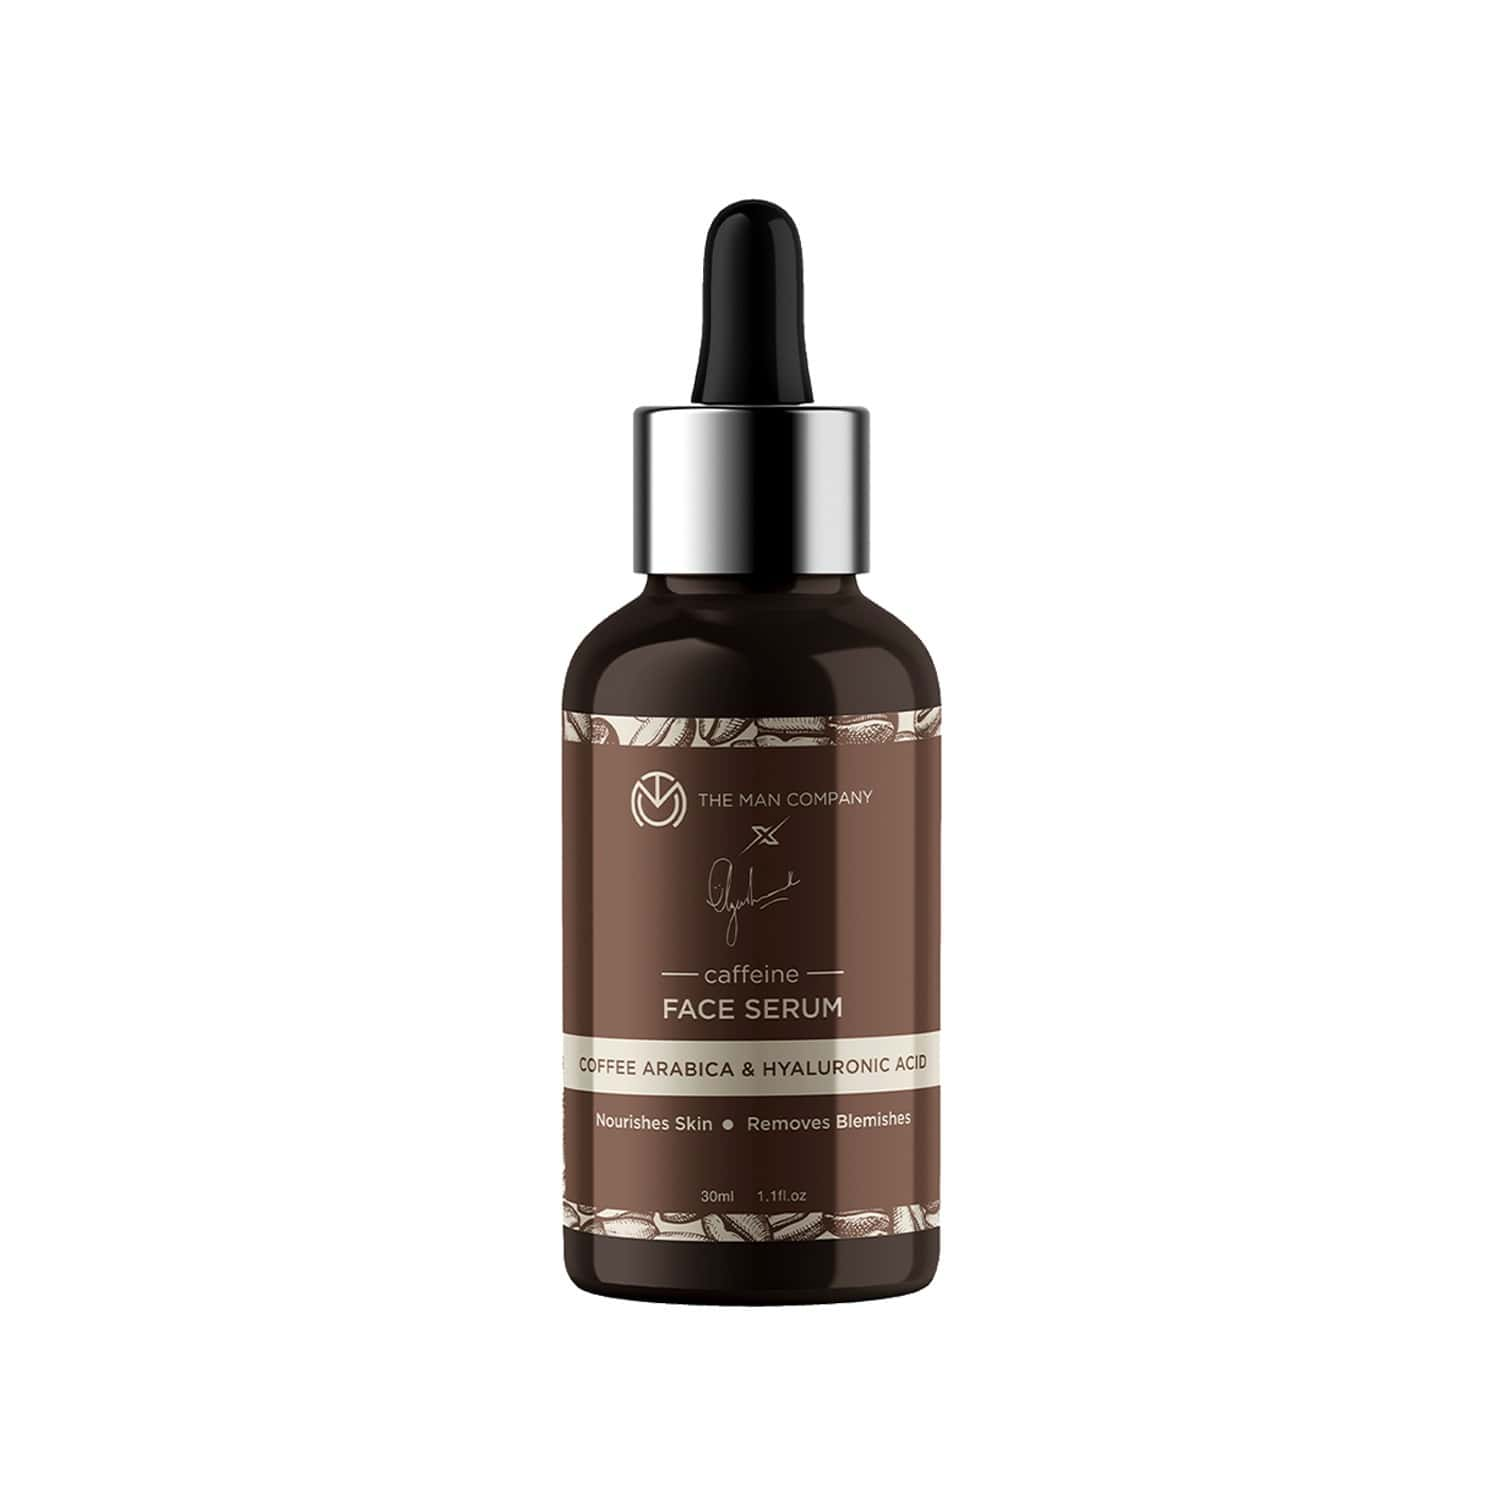 The Man Company Caffeine Face Serum By Ayushmann Khurrana With Coffee Arabica And Hyaluronic Acid - 30 Ml